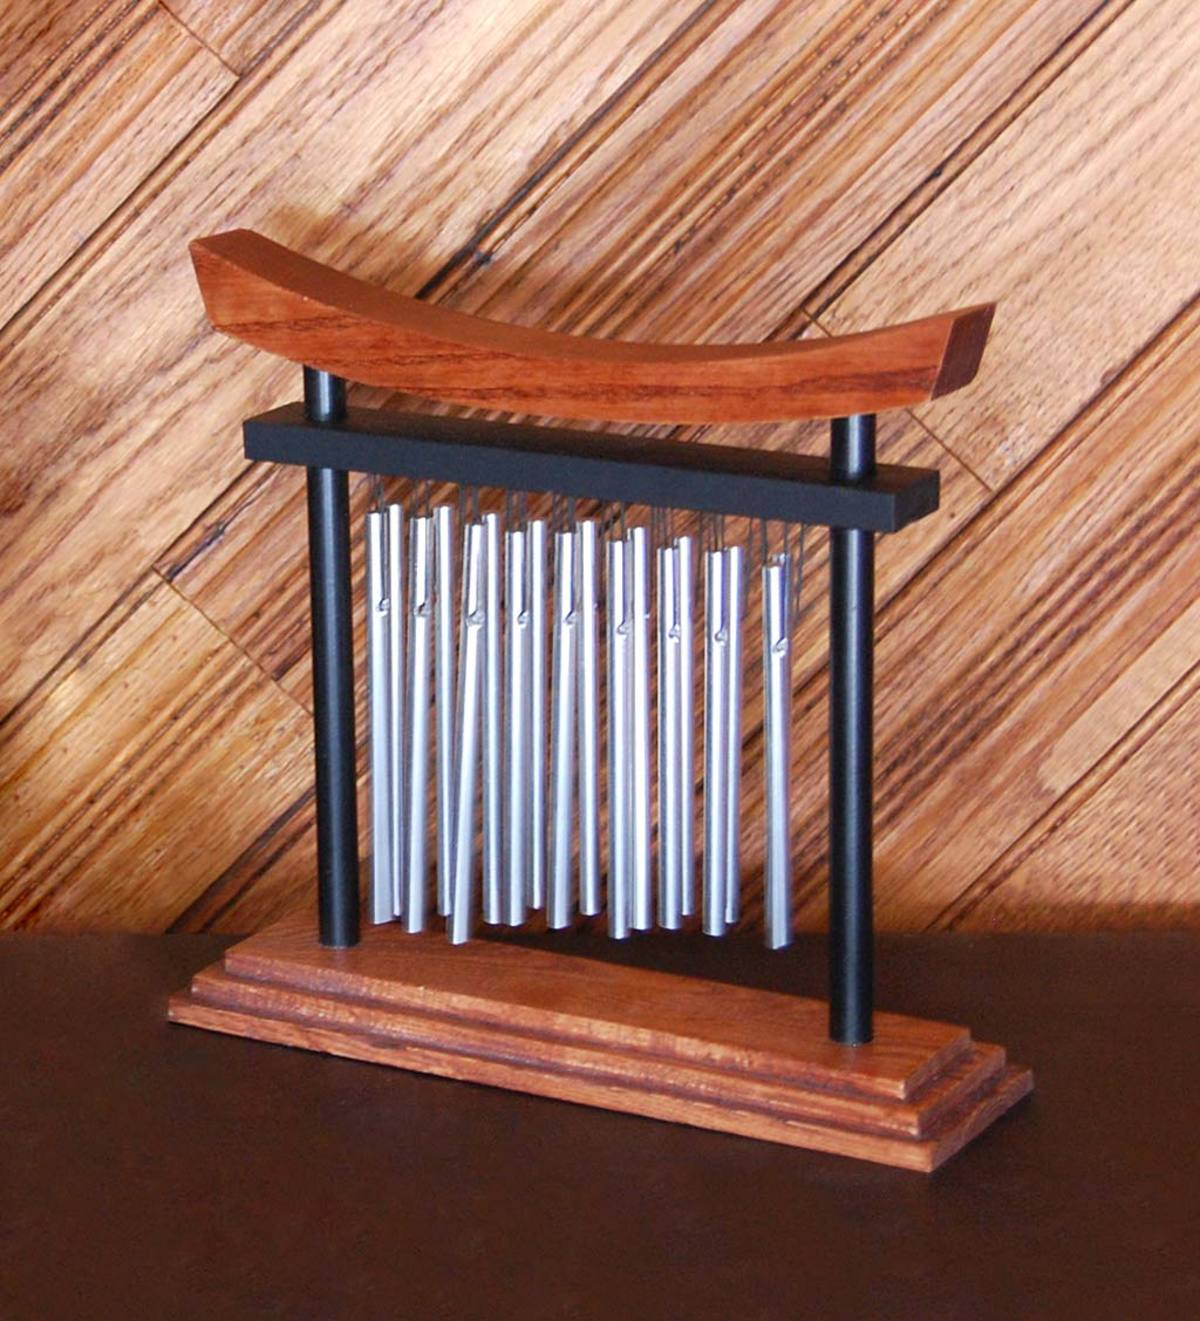 Shinto-Inspired Wood and Aluminum Tranquility Chime